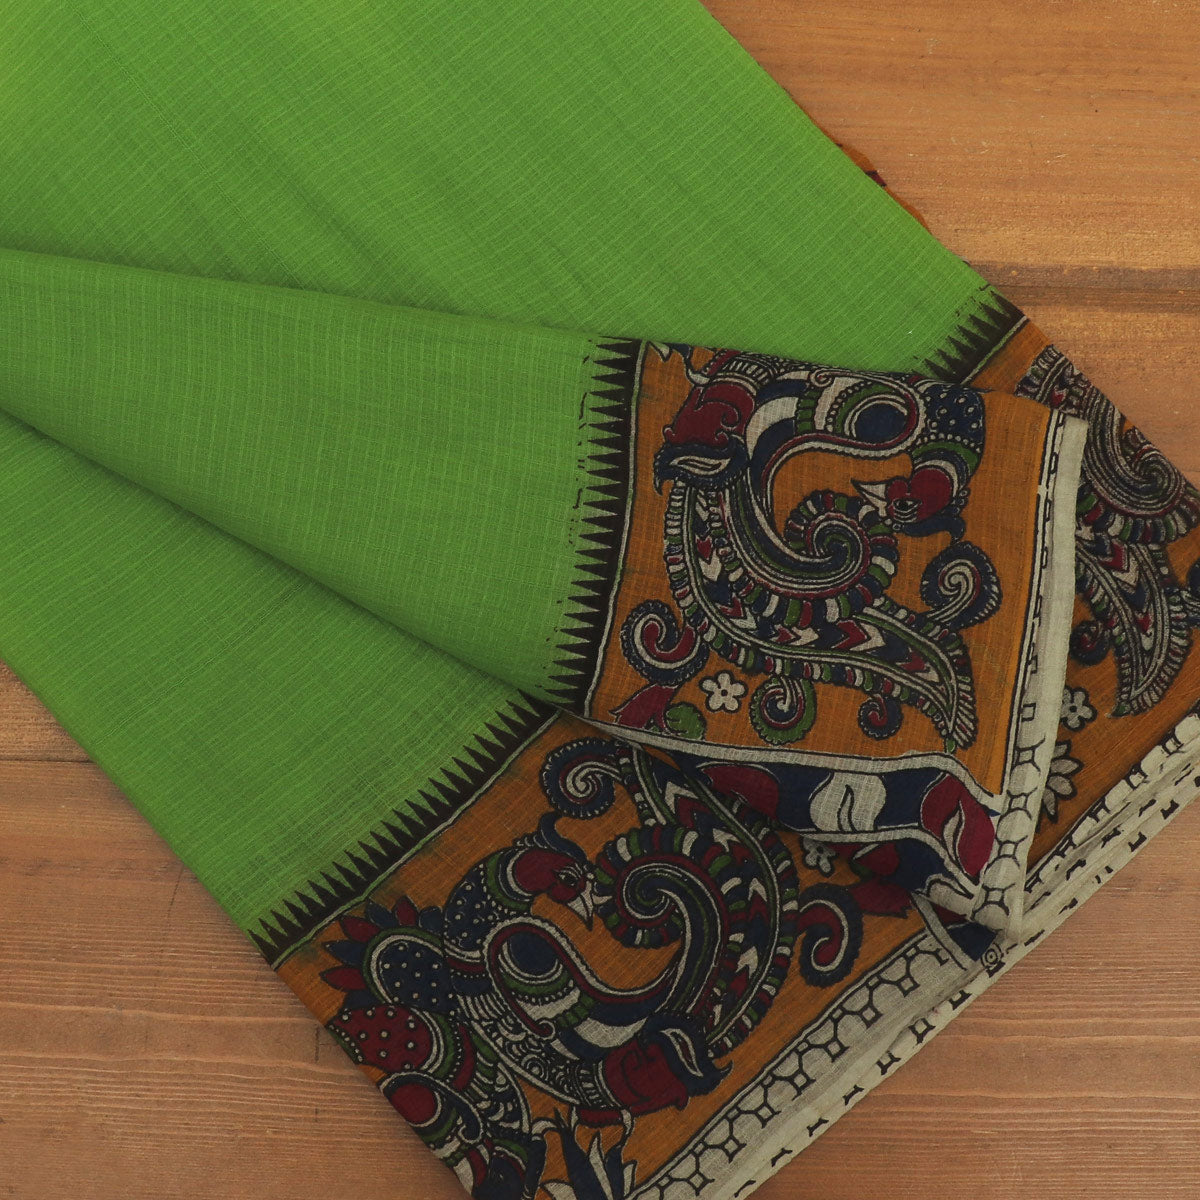 Kotta kalamkari Cotton Saree Parrot Green and dark Mustard with Annam border